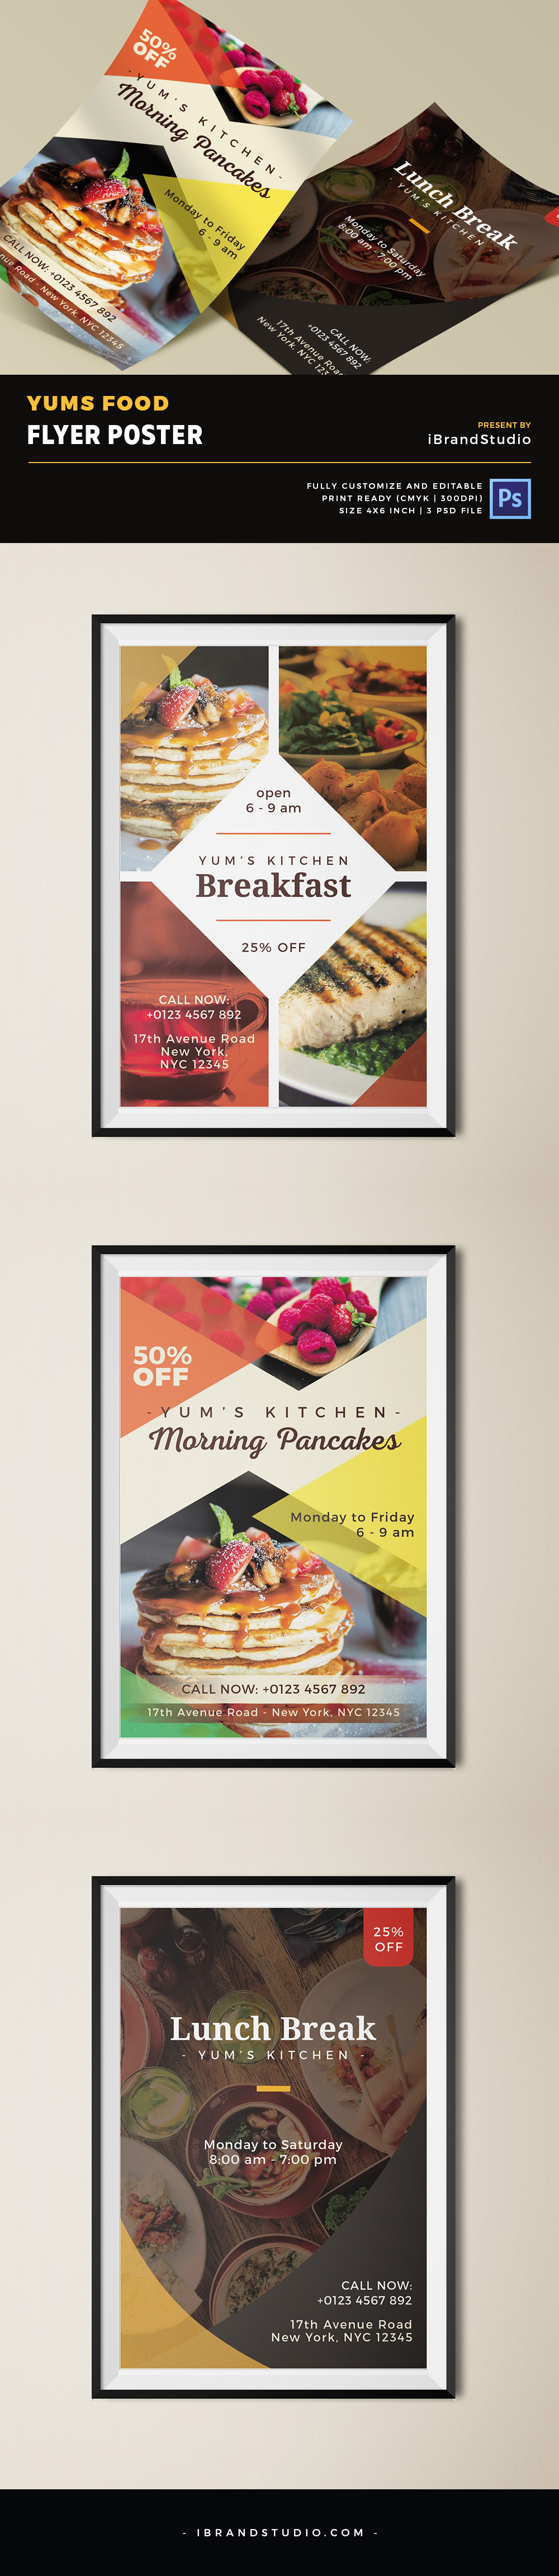 Yums Food Flyer Template Omahpsd